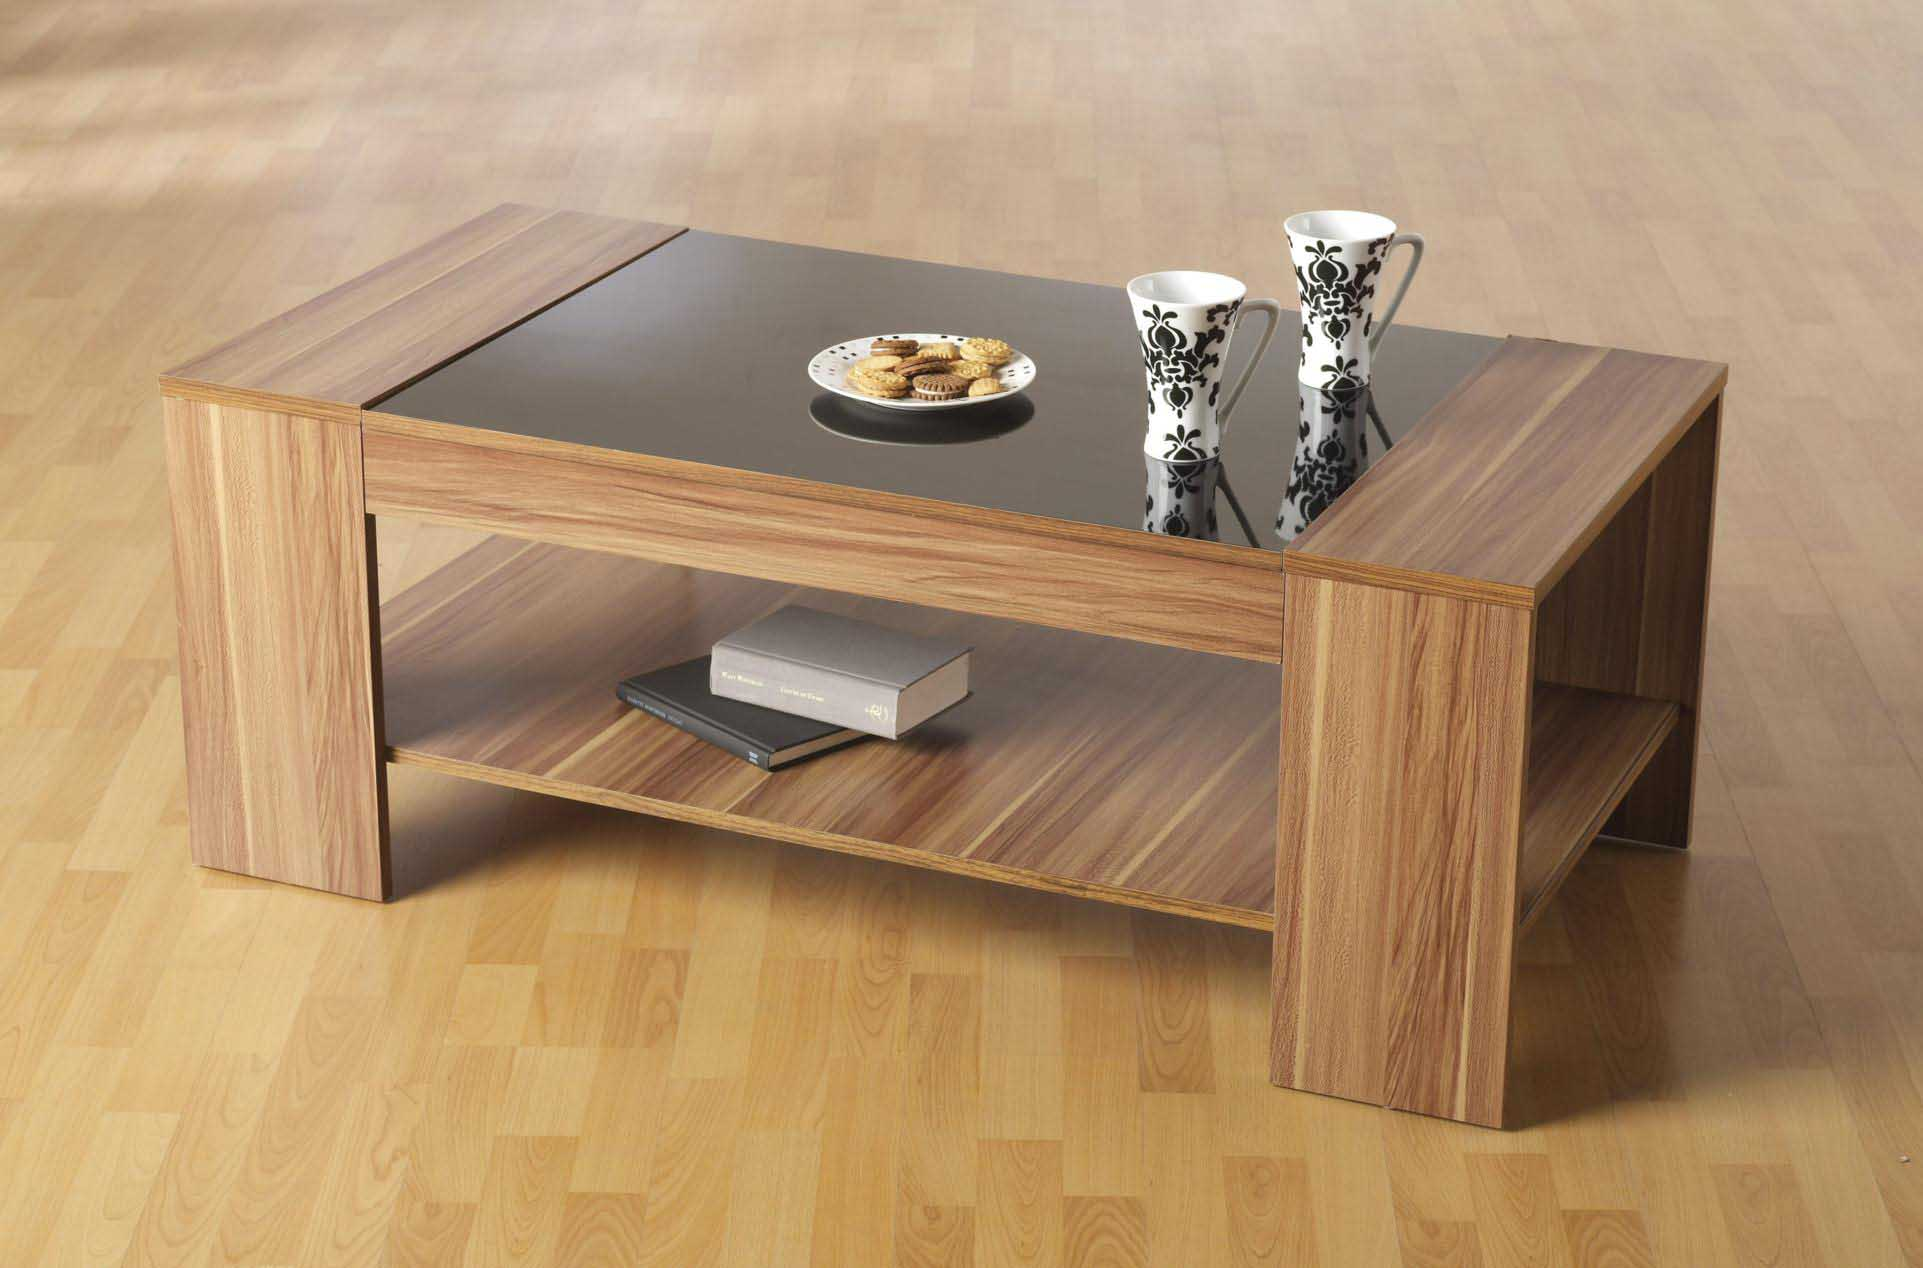 glass top coffee table design plans photo - 7